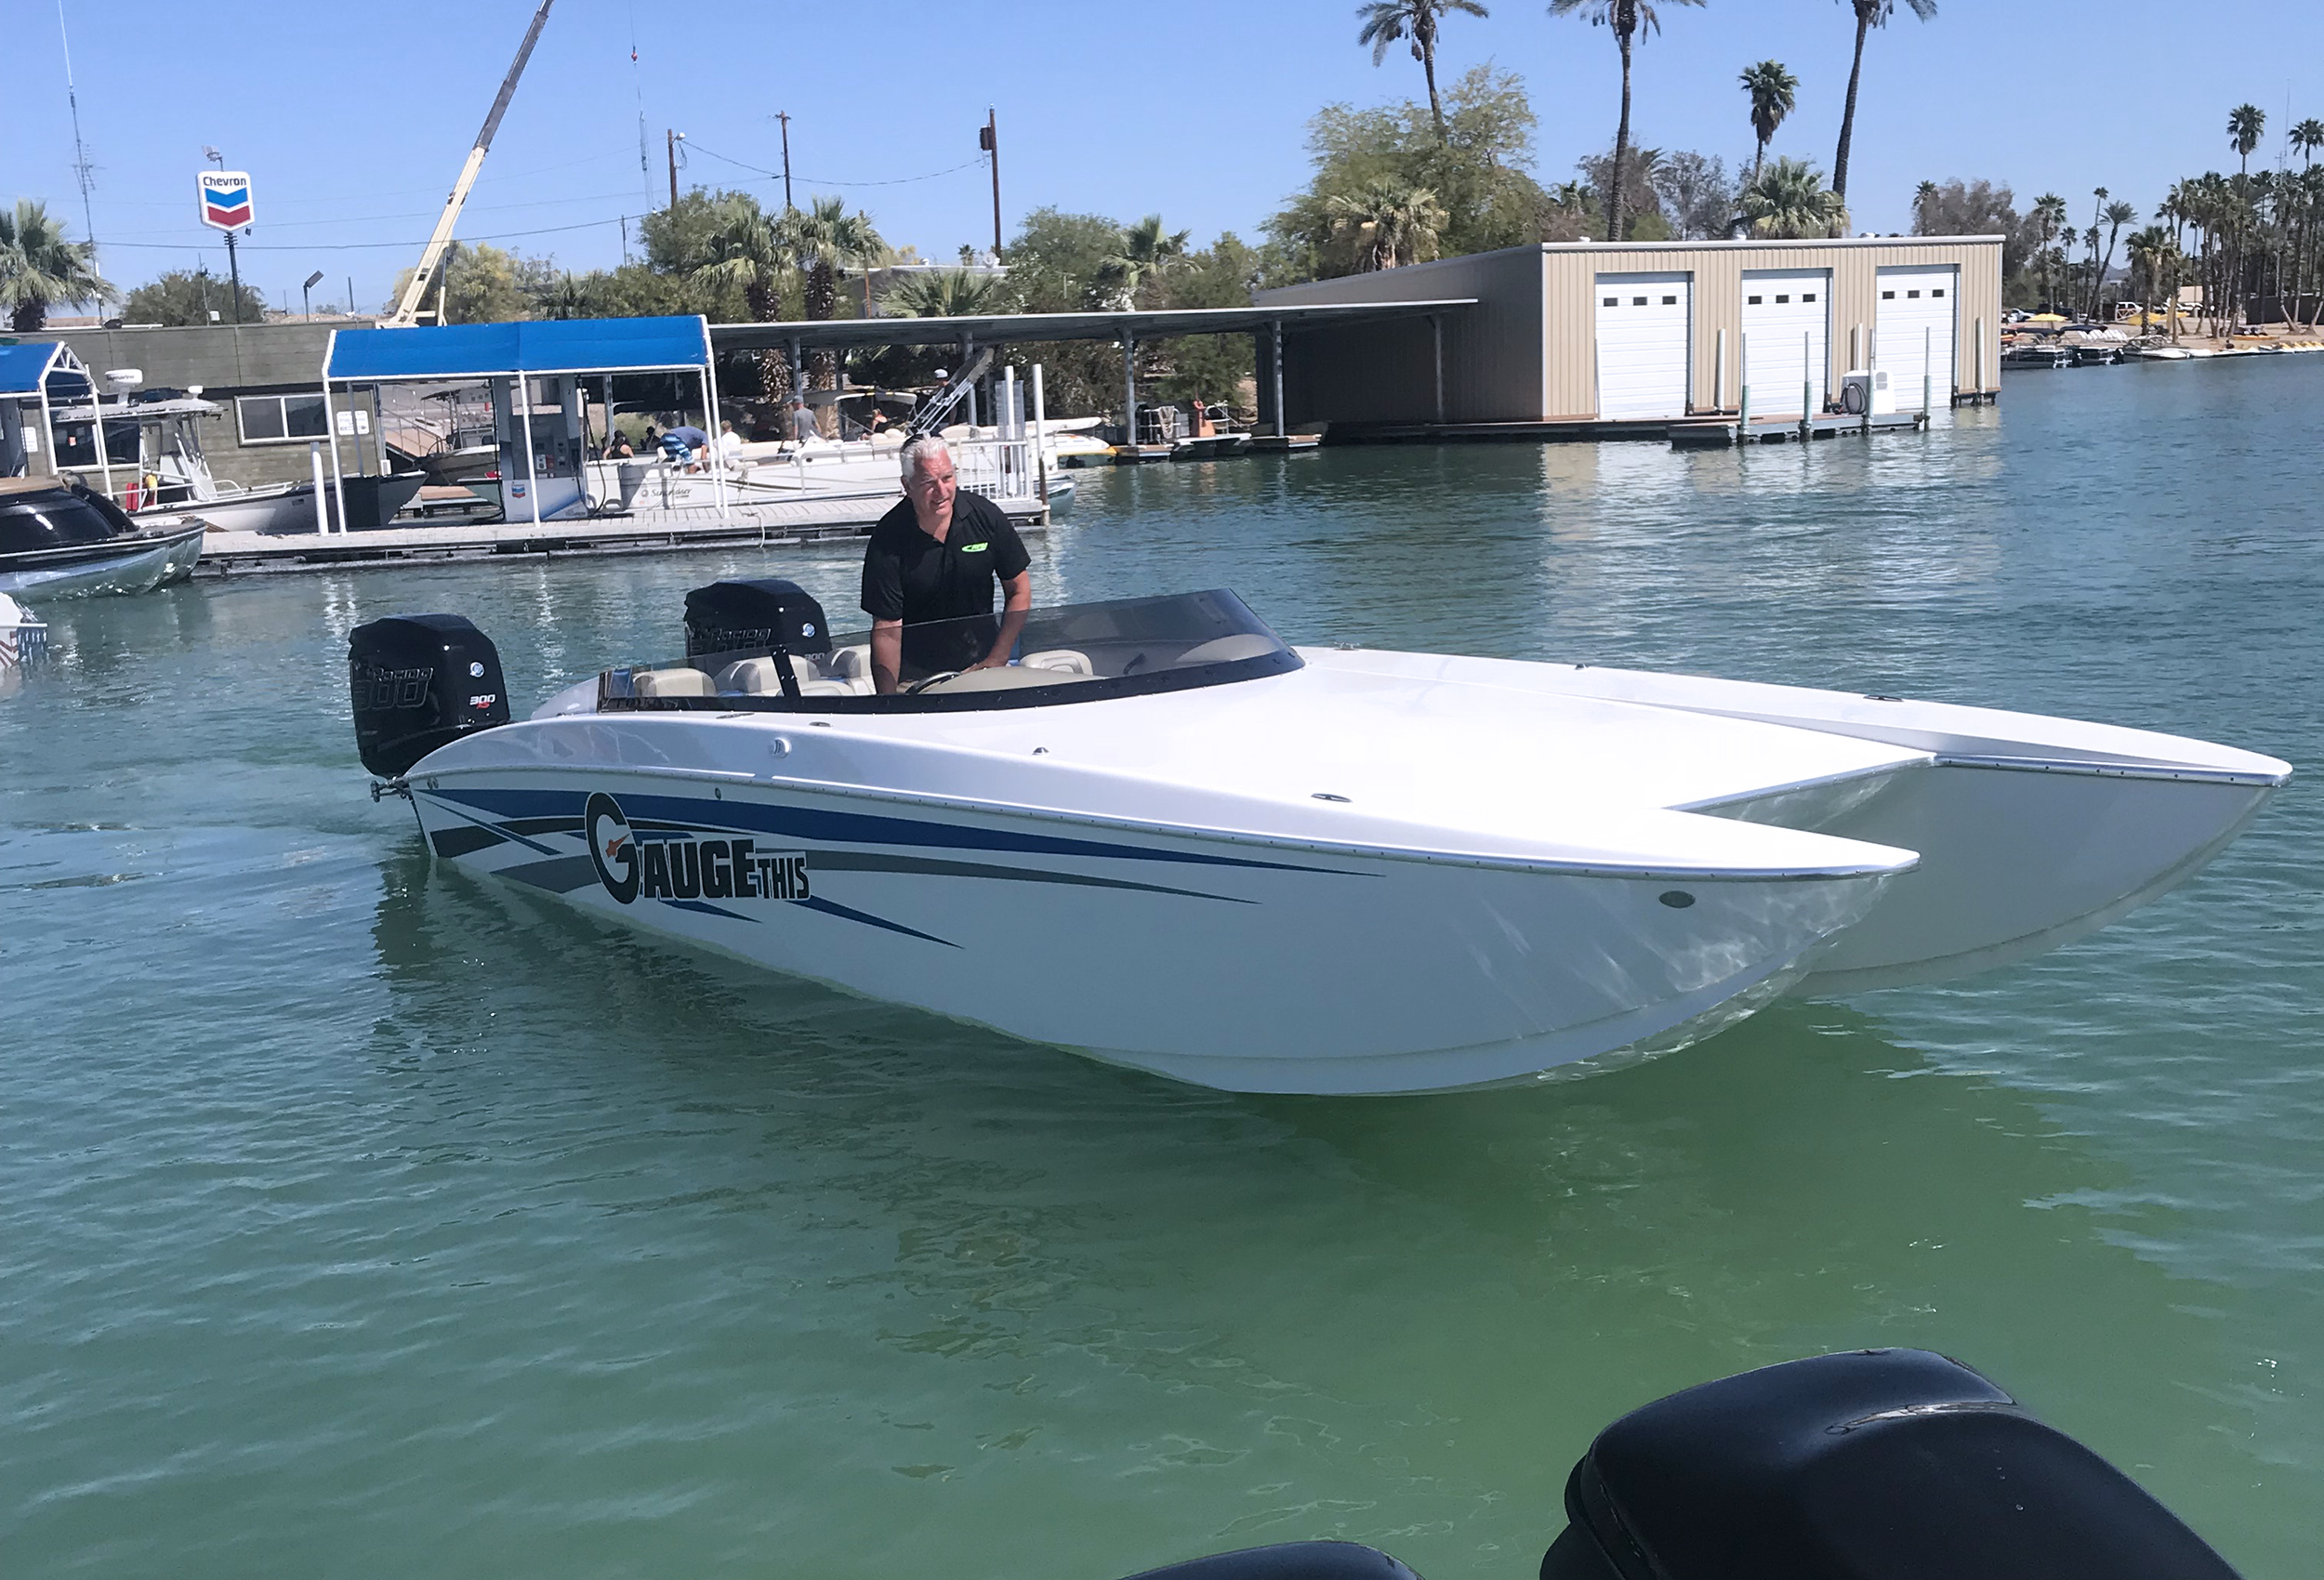 RPM 26 Redline Lavey Craft - Gauge This Joe driving by Pirate Cove.jpg